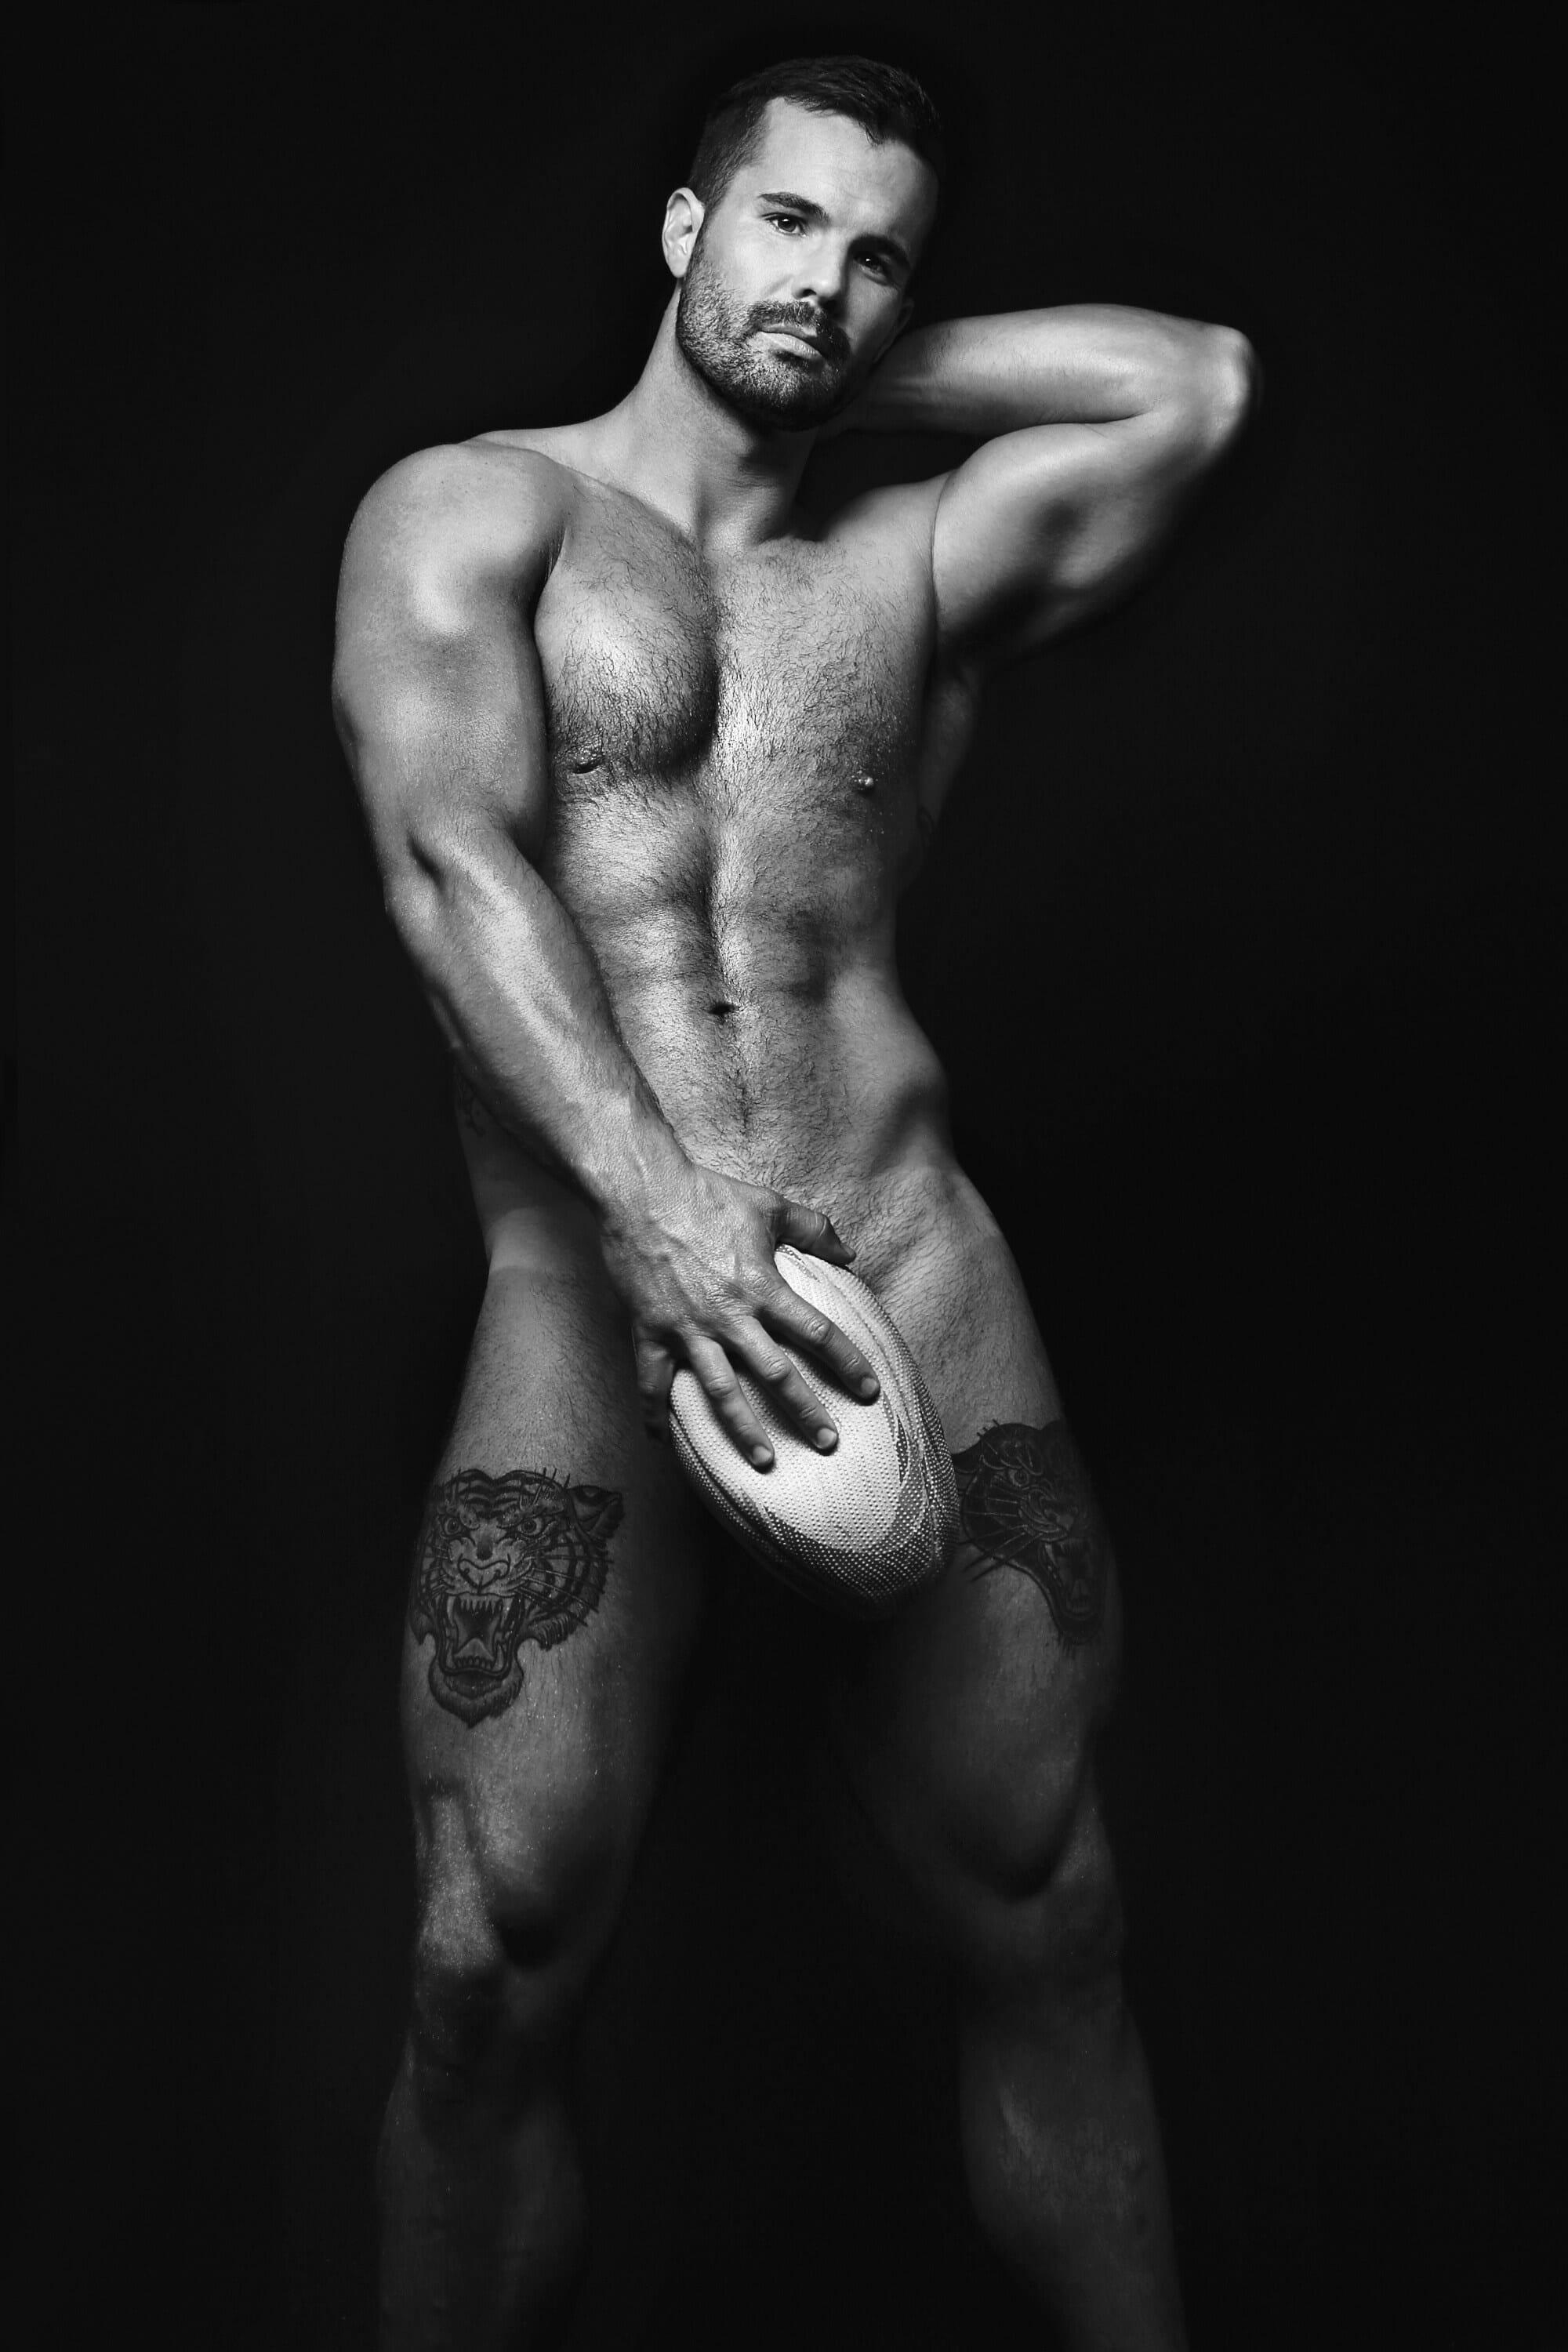 Simon Dunn nude photo shoot